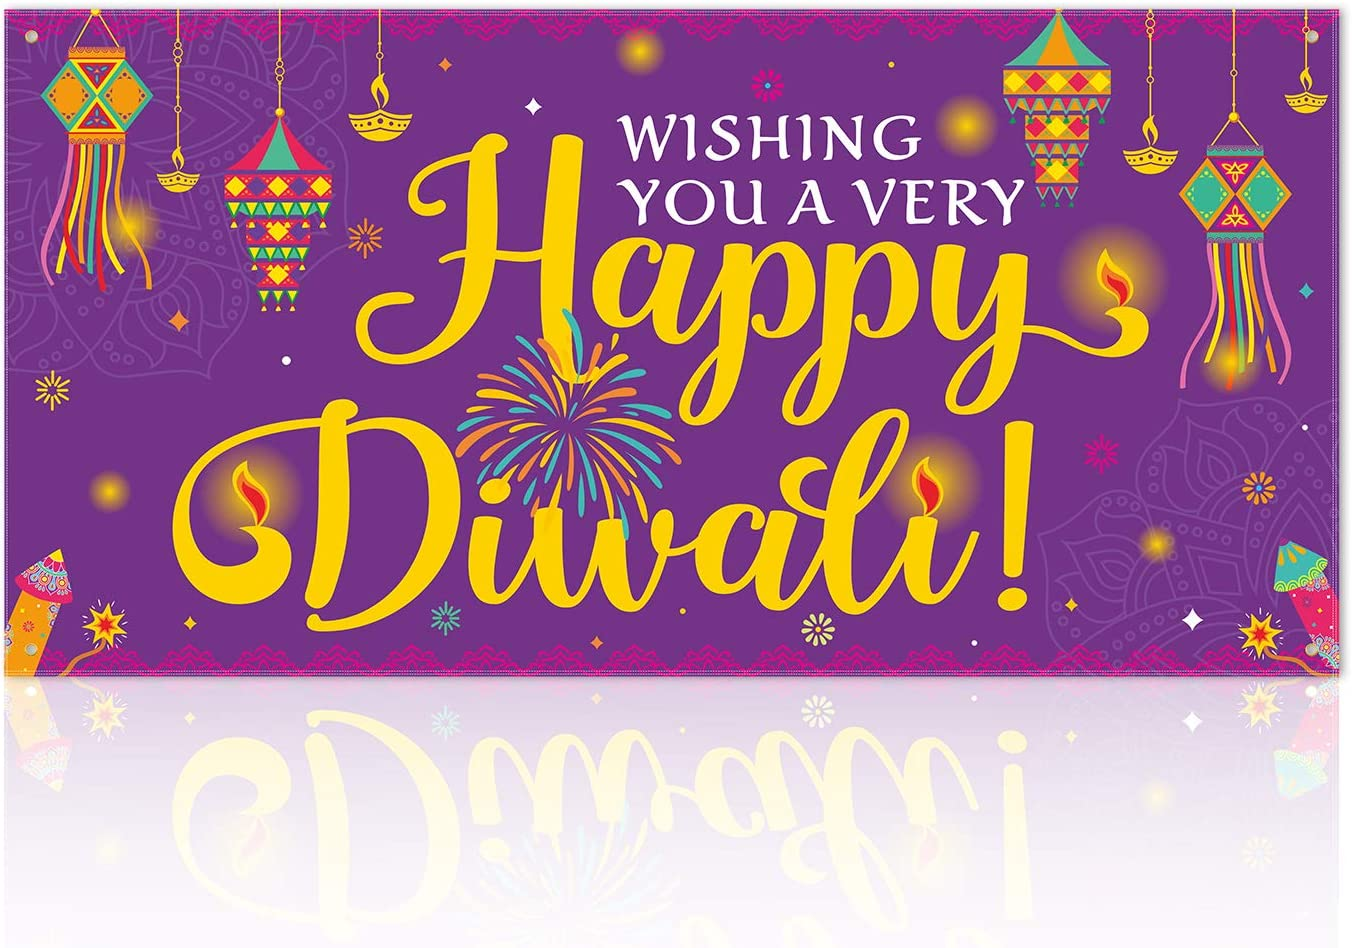 Diwali Fabric Banner, Wishing You A Very Happy Diwali Yard Signs Festival of Lights Indian Festival Deepavali Garden Porch Decor…